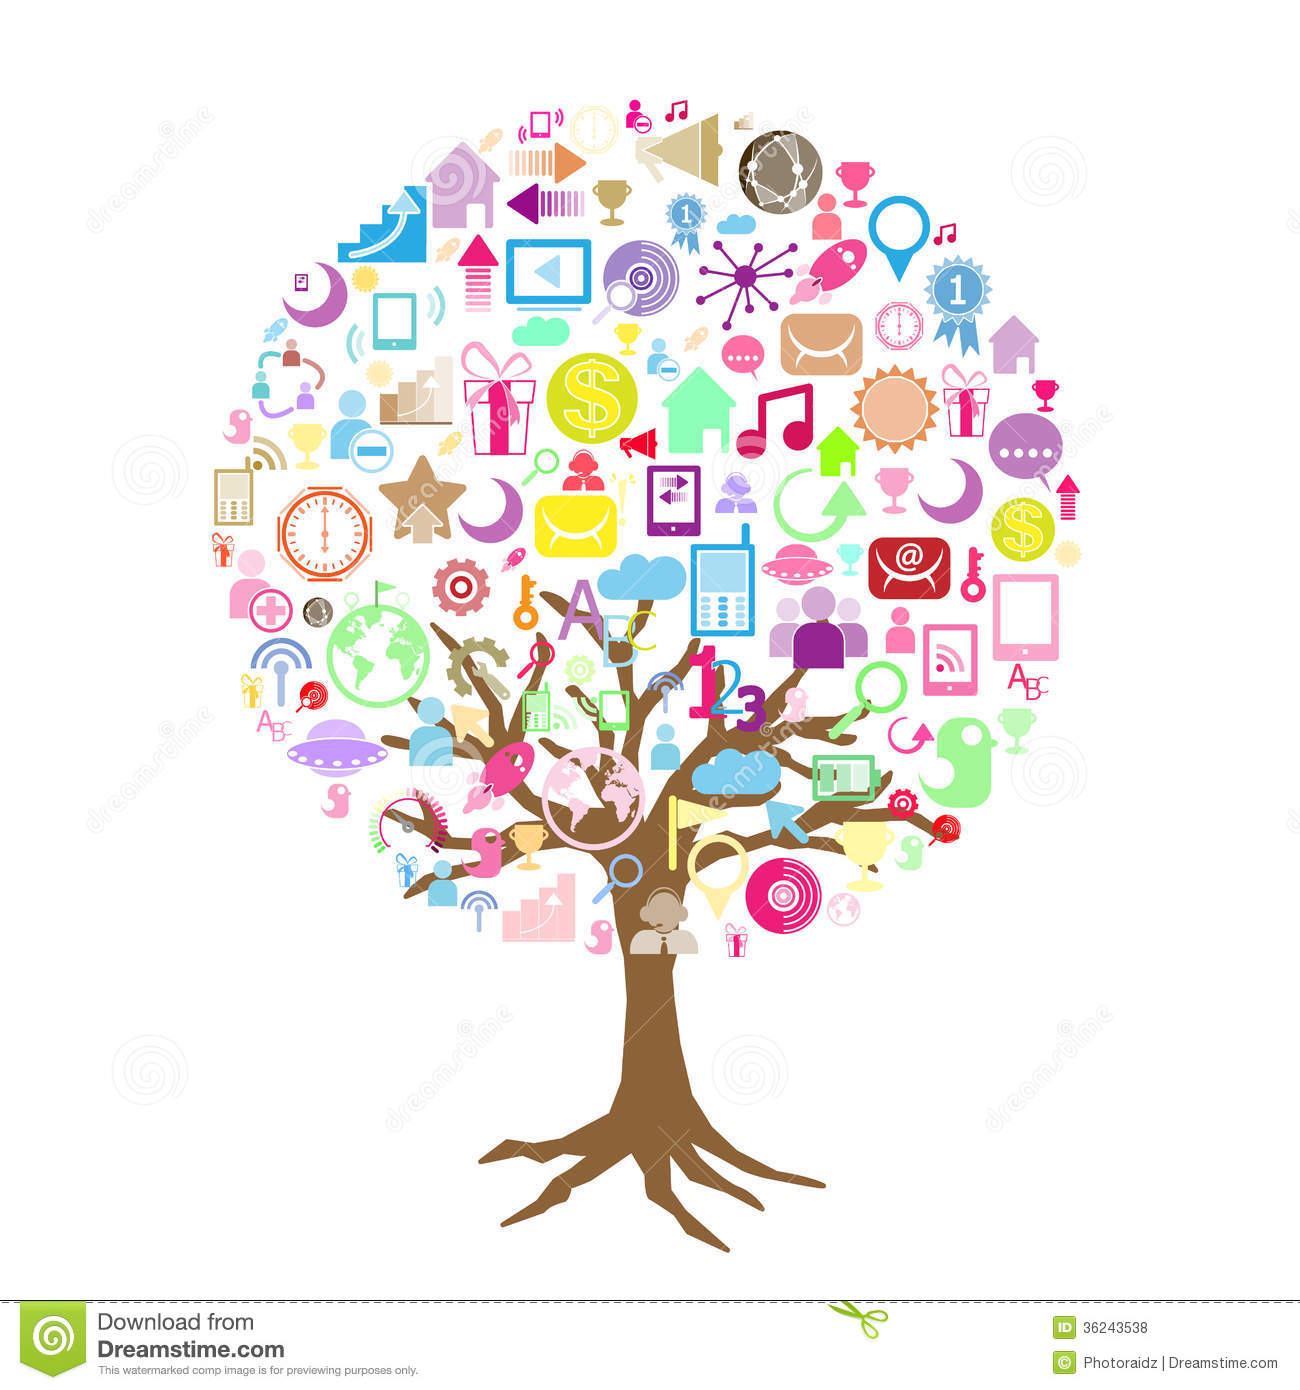 Social Network Tree Royalty Free Stock Photos - Image: 36243538